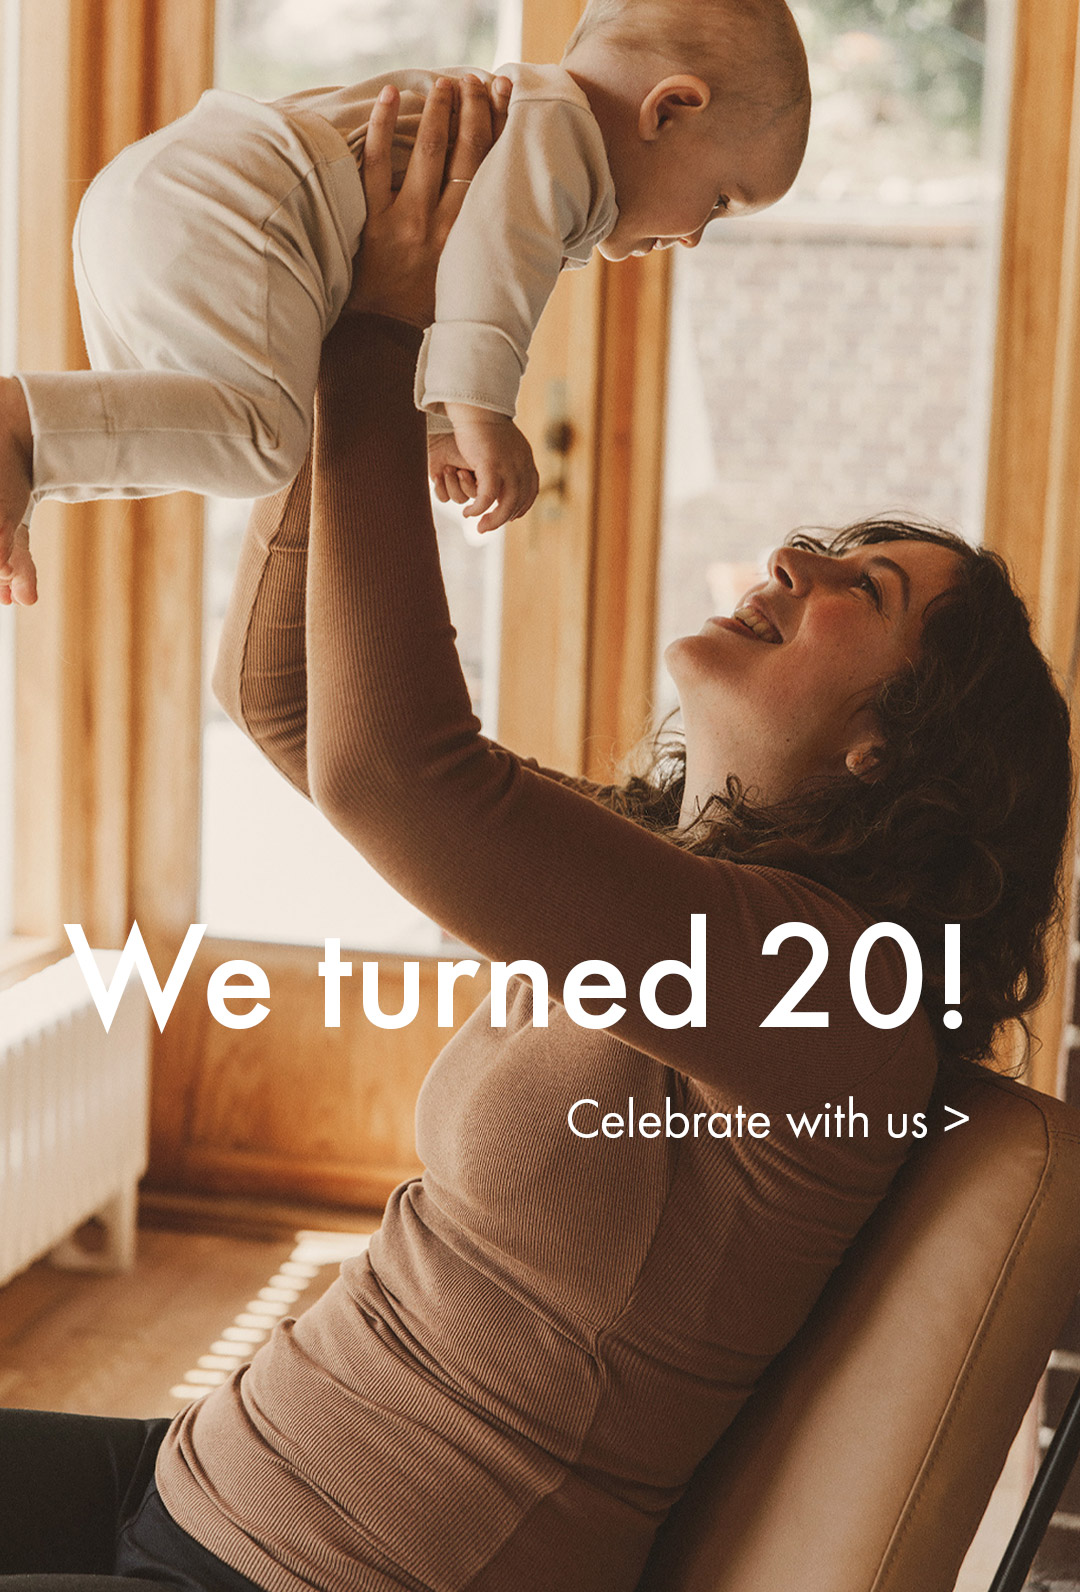 We turned 20!